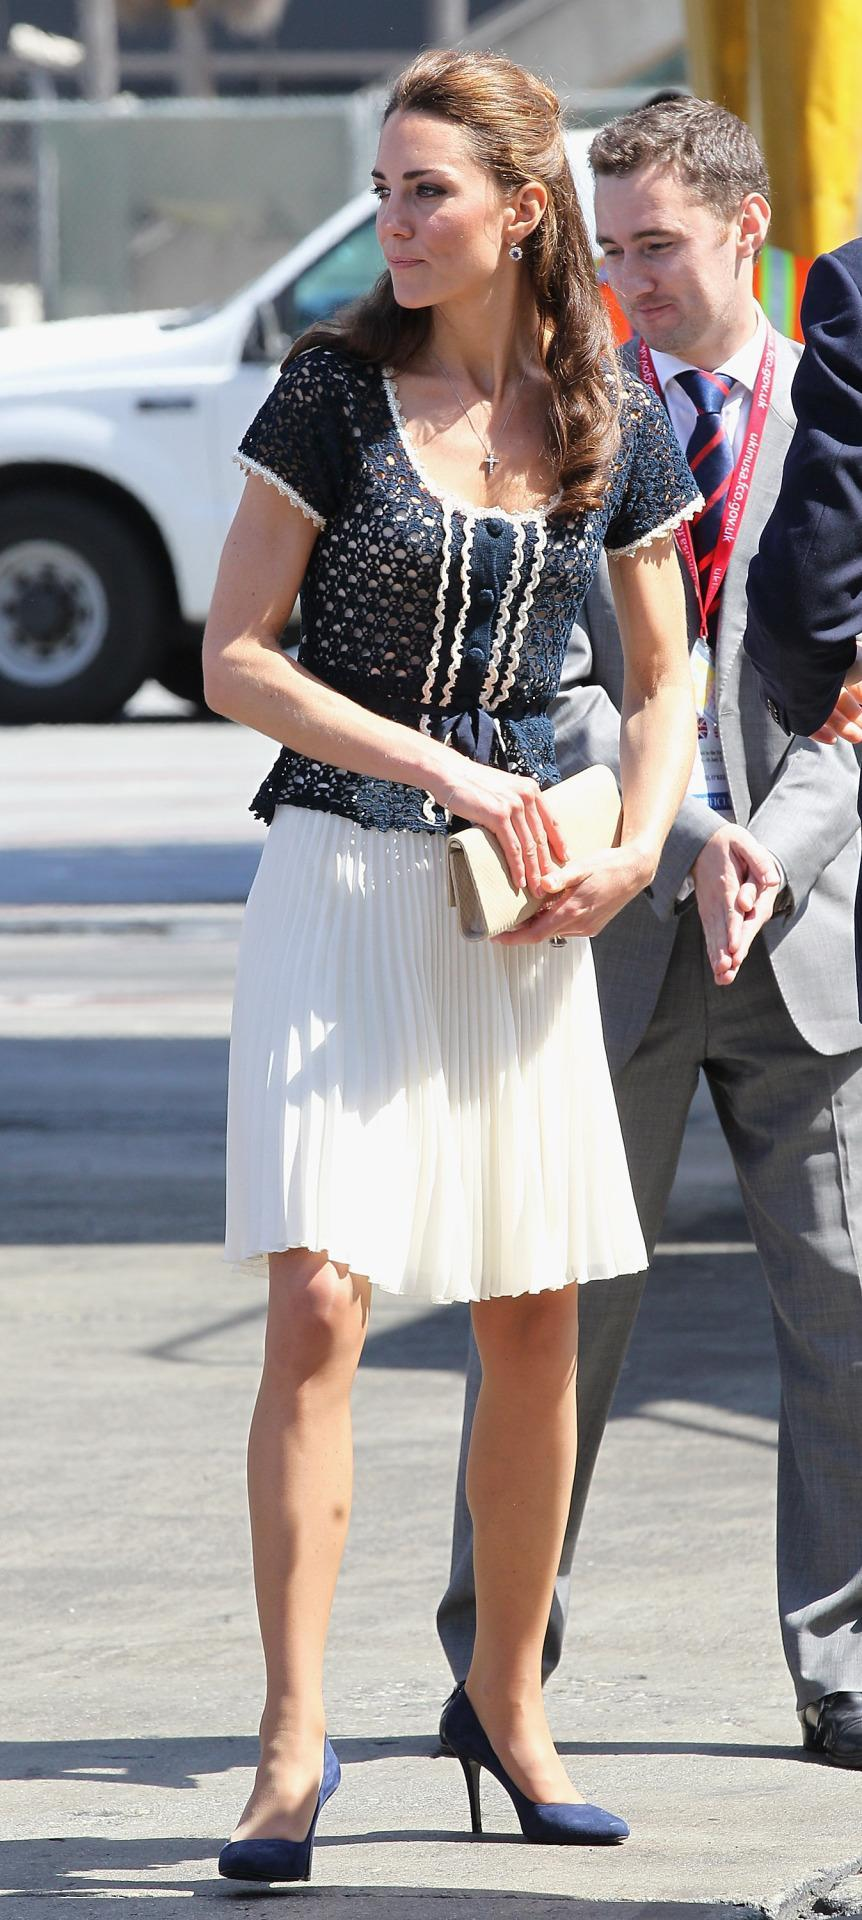 <p>Kate wore a white pleated skirt and knitted top (both from Whistles) for her last day in LA. She completed the look with navy pumps and an eggshell clutch.</p><p><i>[Photo: PA]</i></p>